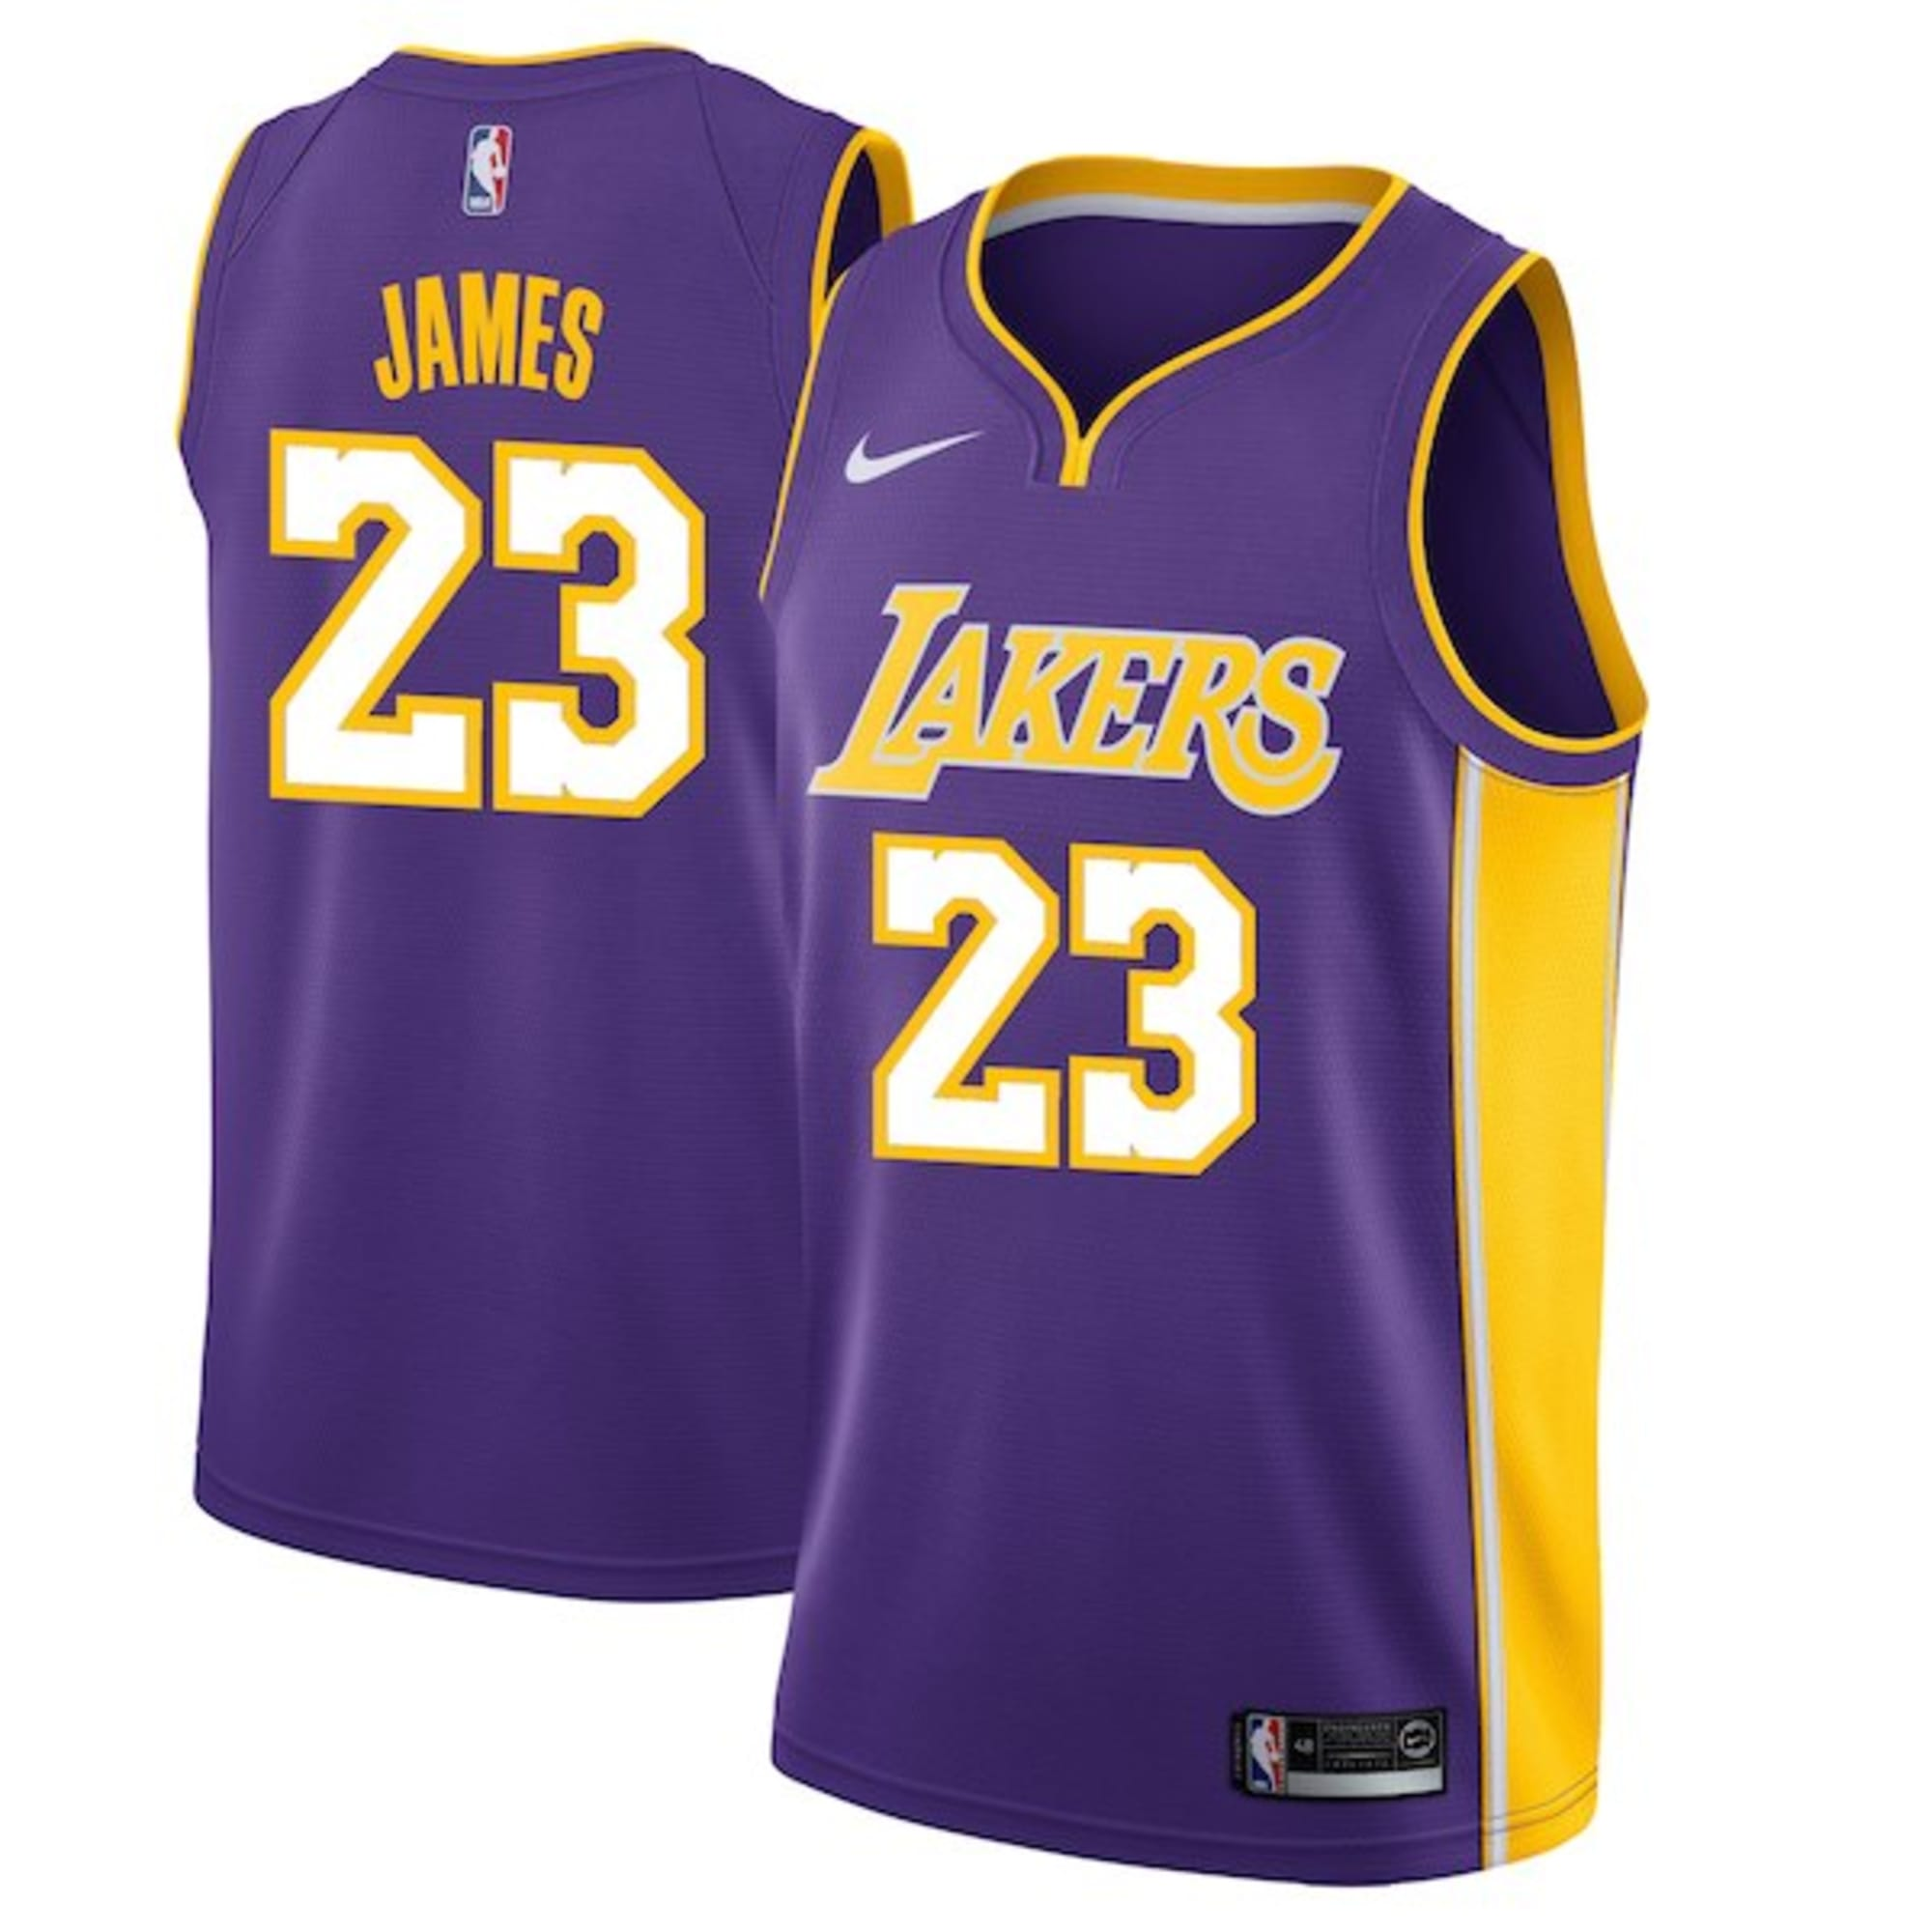 Get your LeBron James jersey now